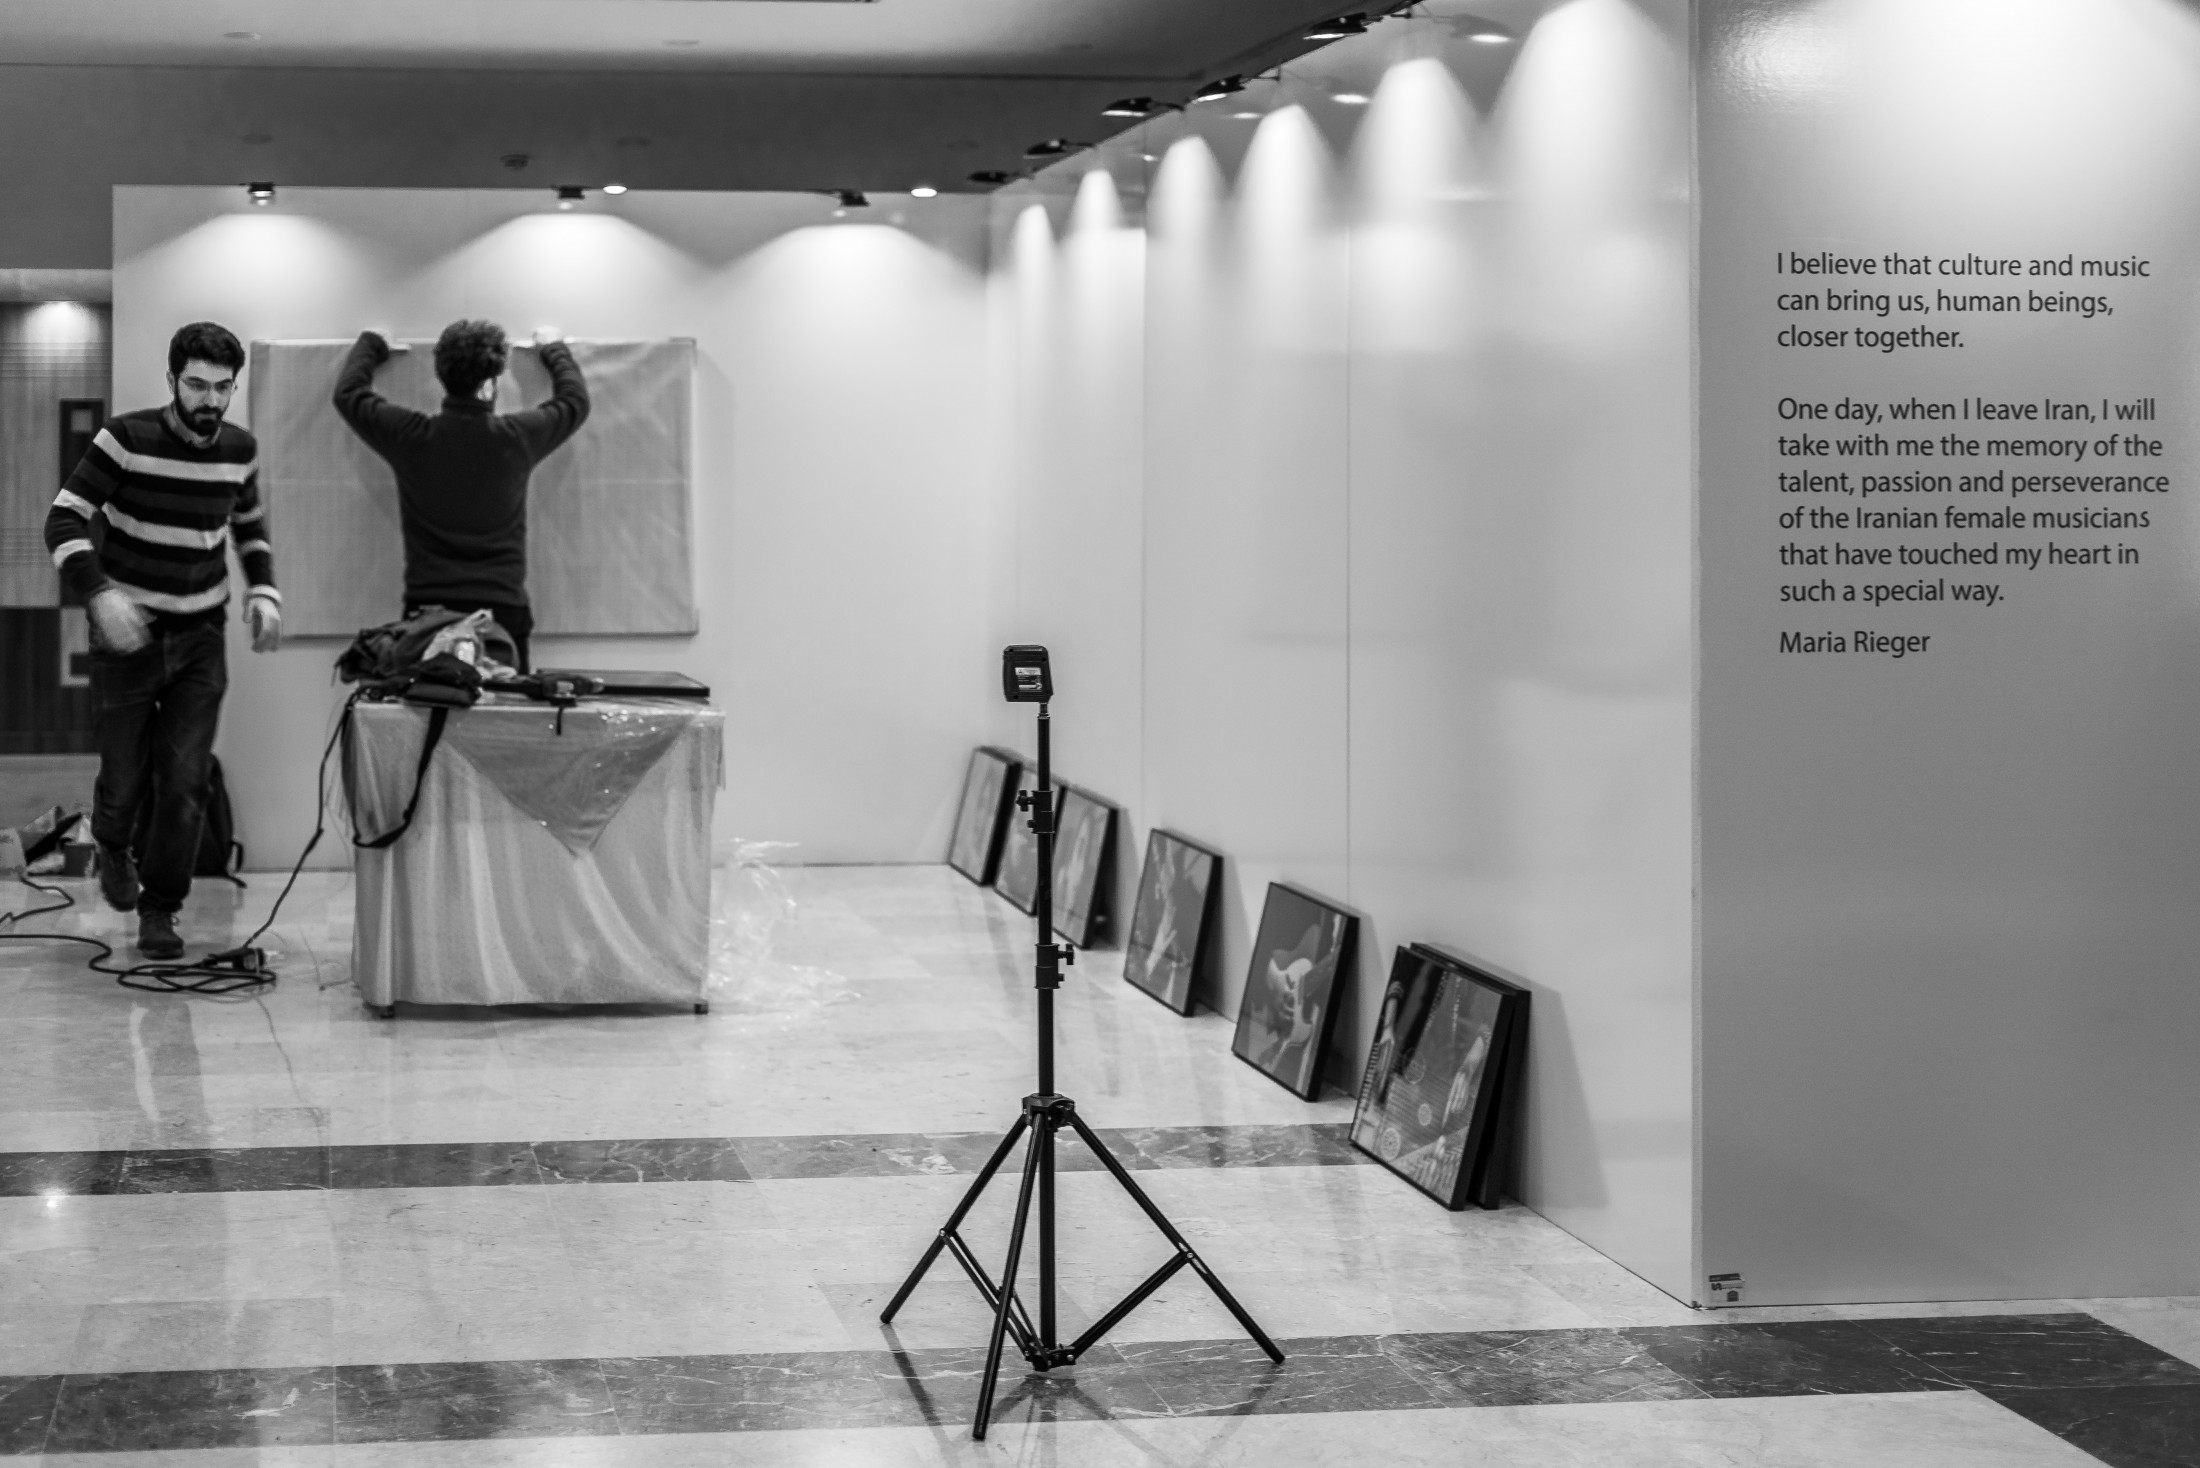 Setting up the photo exhibition